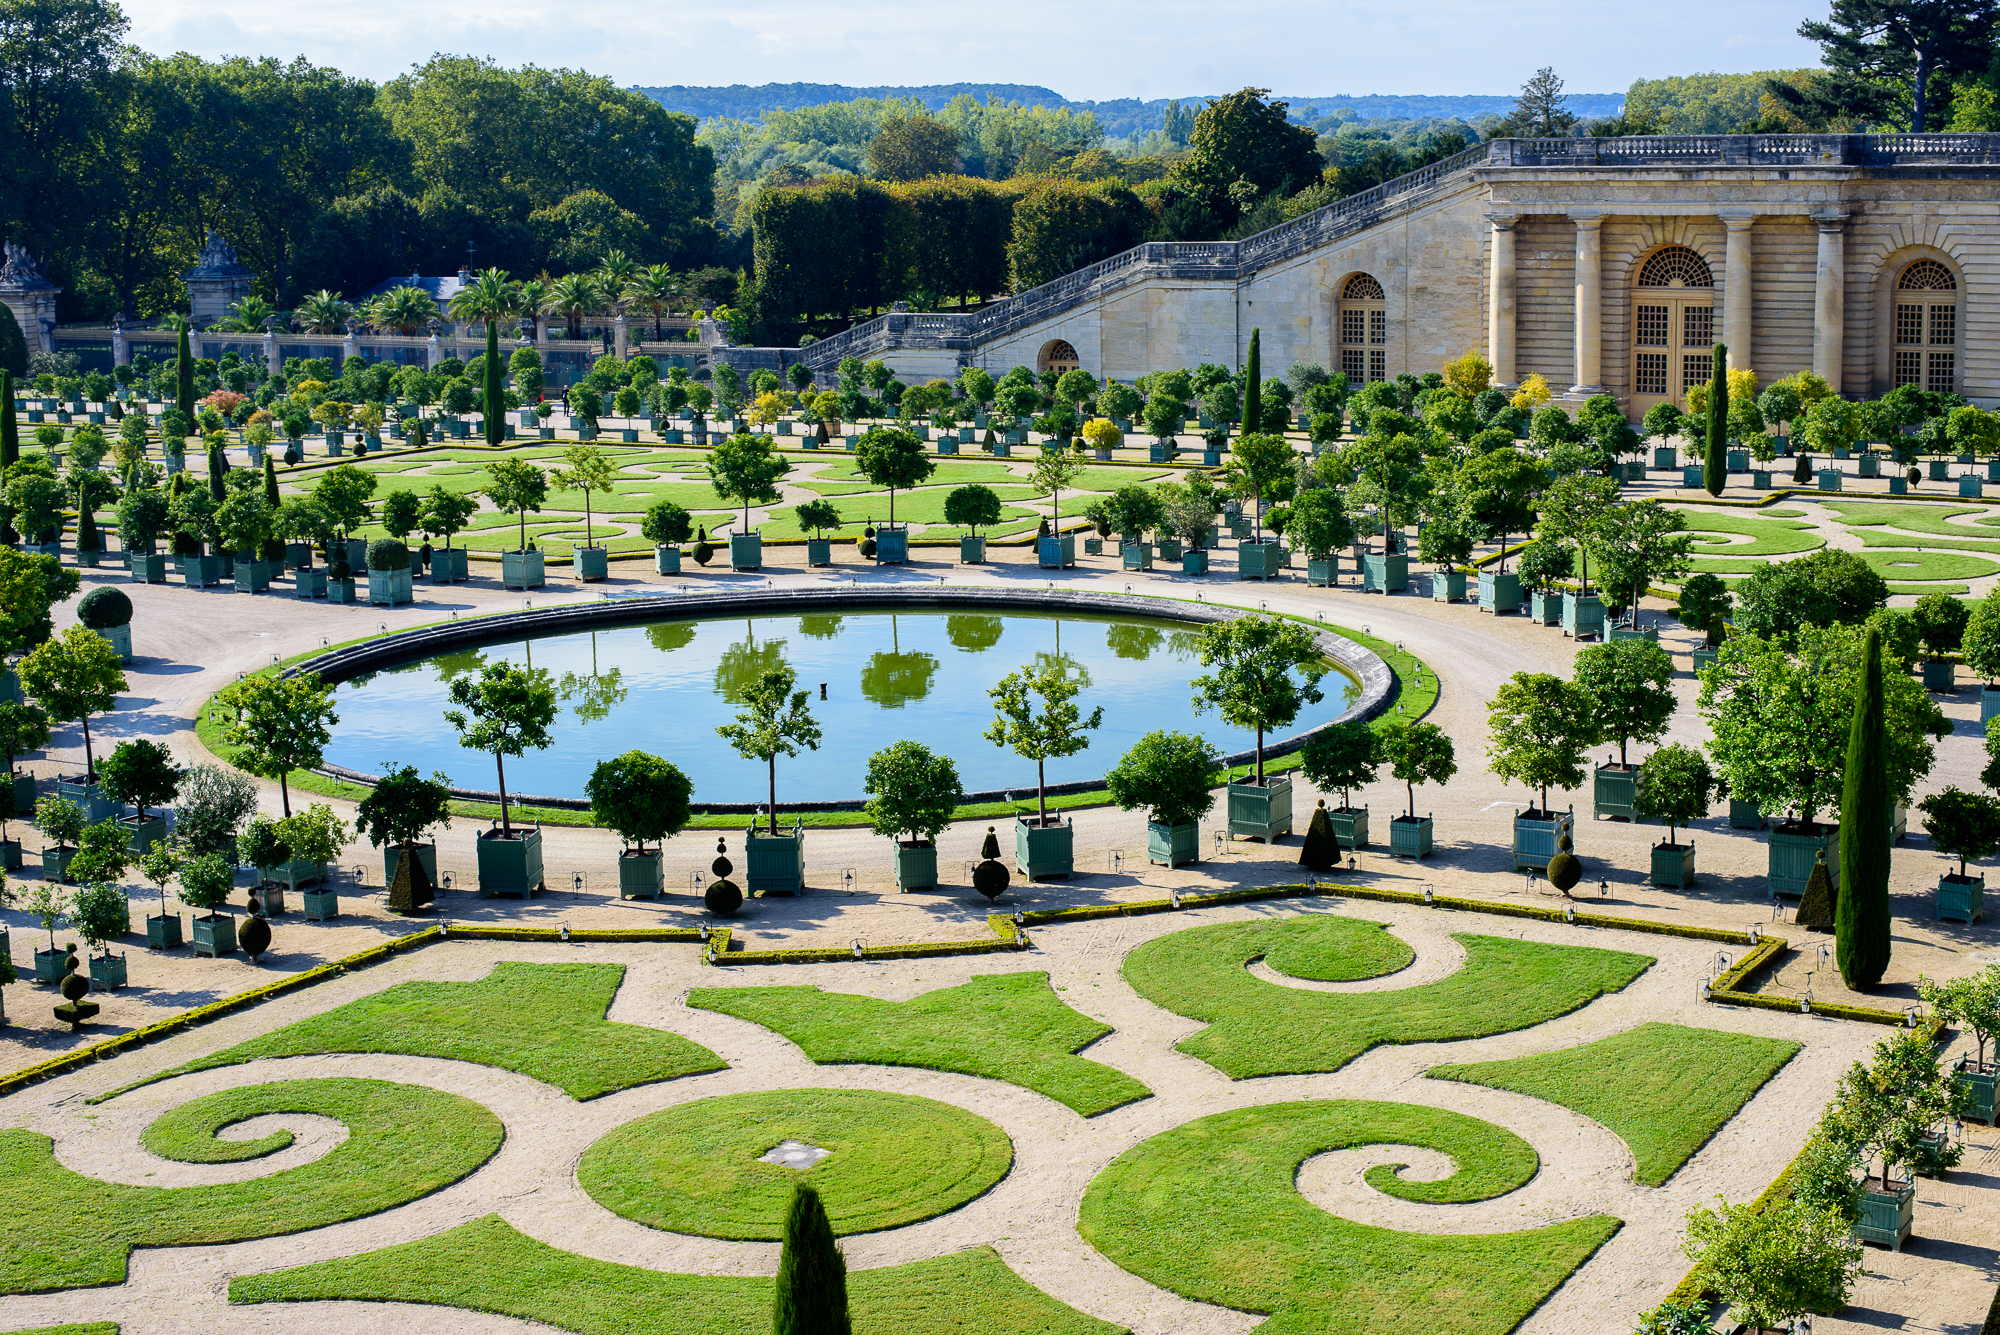 The Gardens Of Versailles Style Plaza